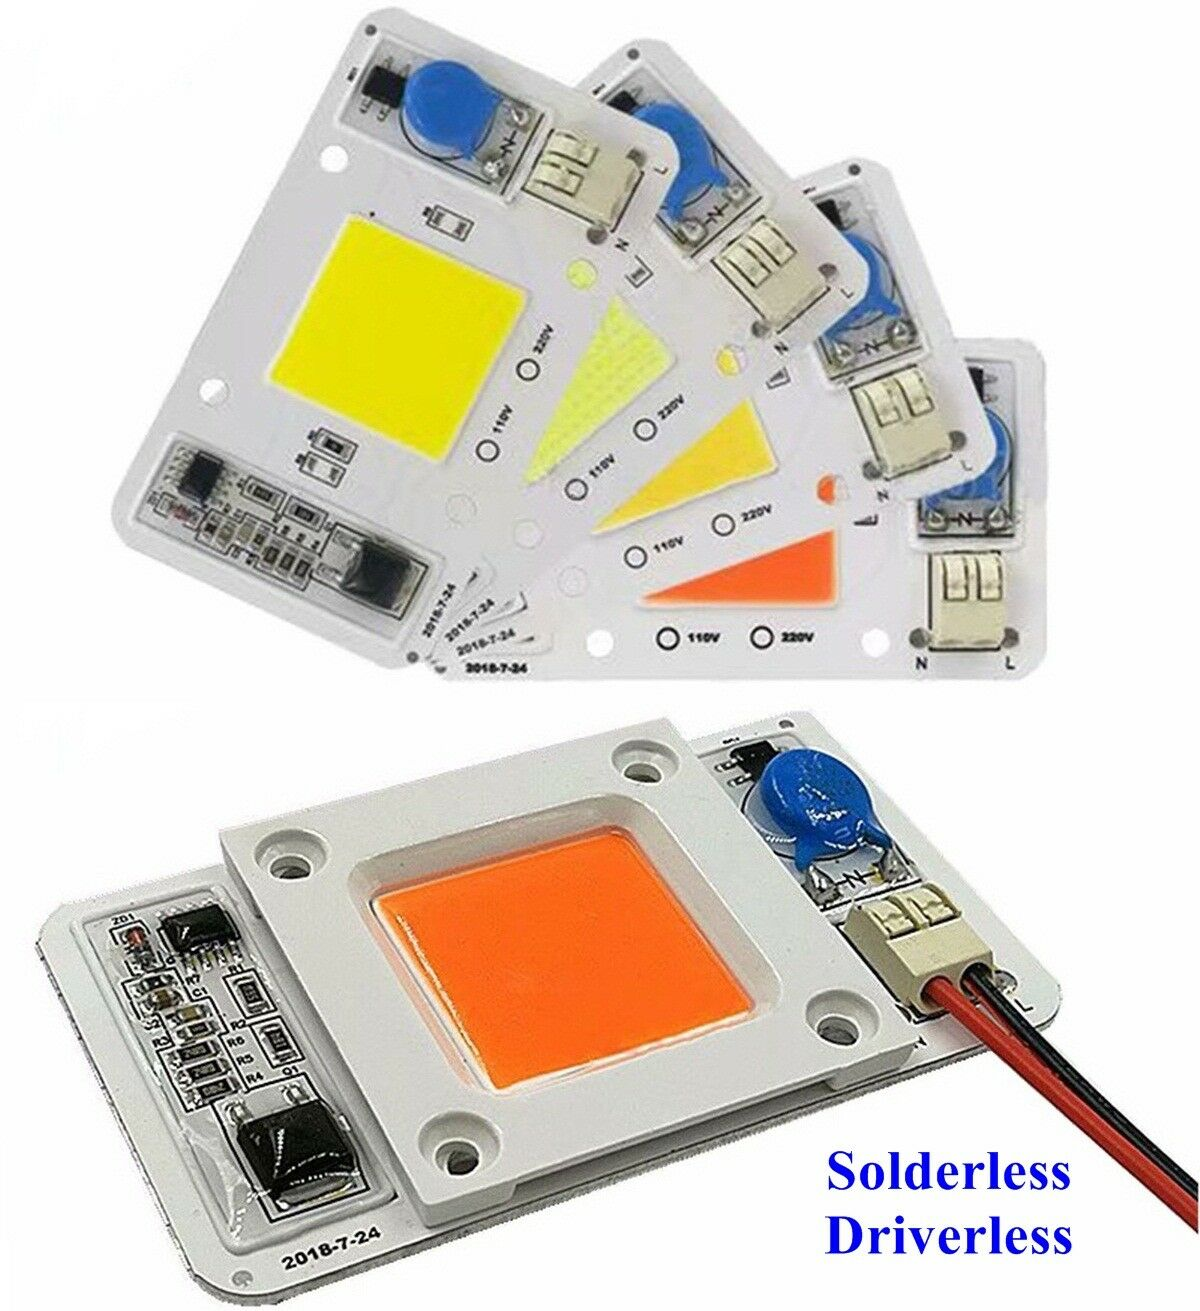 50W Driverless Solderless LED Chip Integrated Smart IC DIY R G B W Full Spectrum Pink  Whtie 110VAC 220VAC